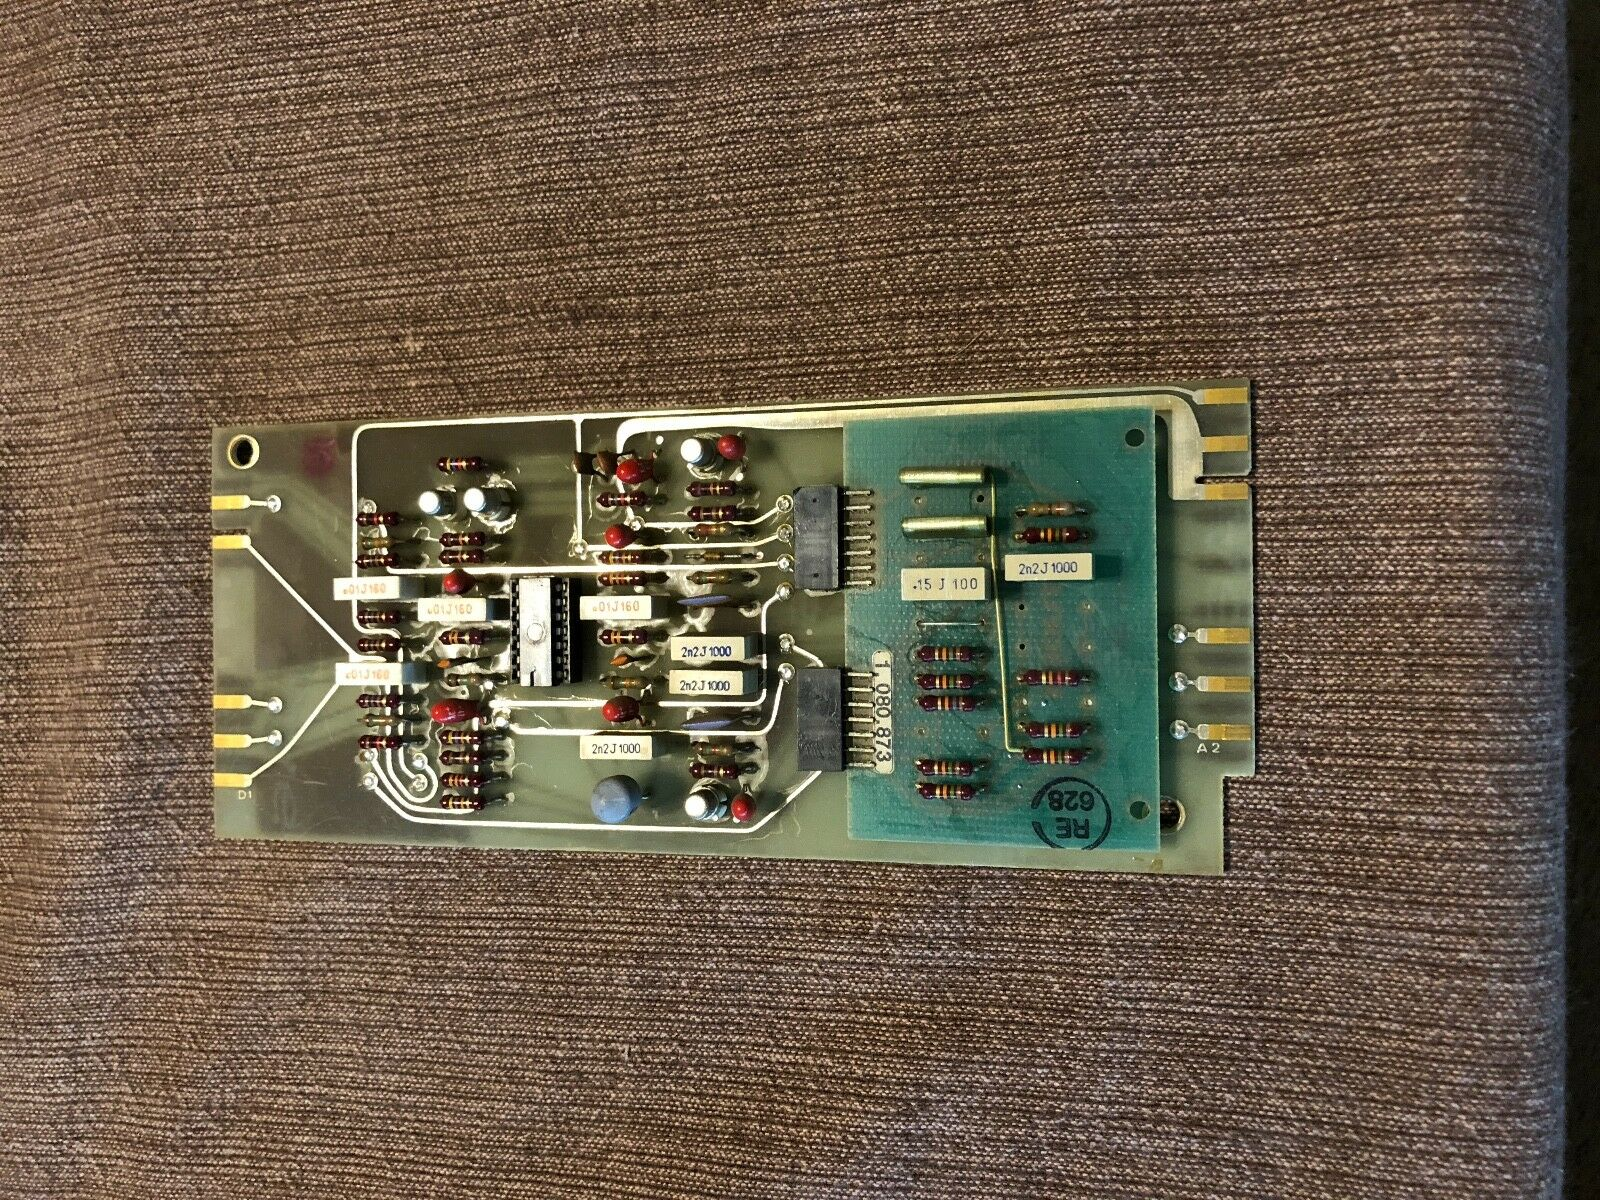 Studer 1.080.873 part for A80 tape recorder, TBA931 IC, as is, as pictured